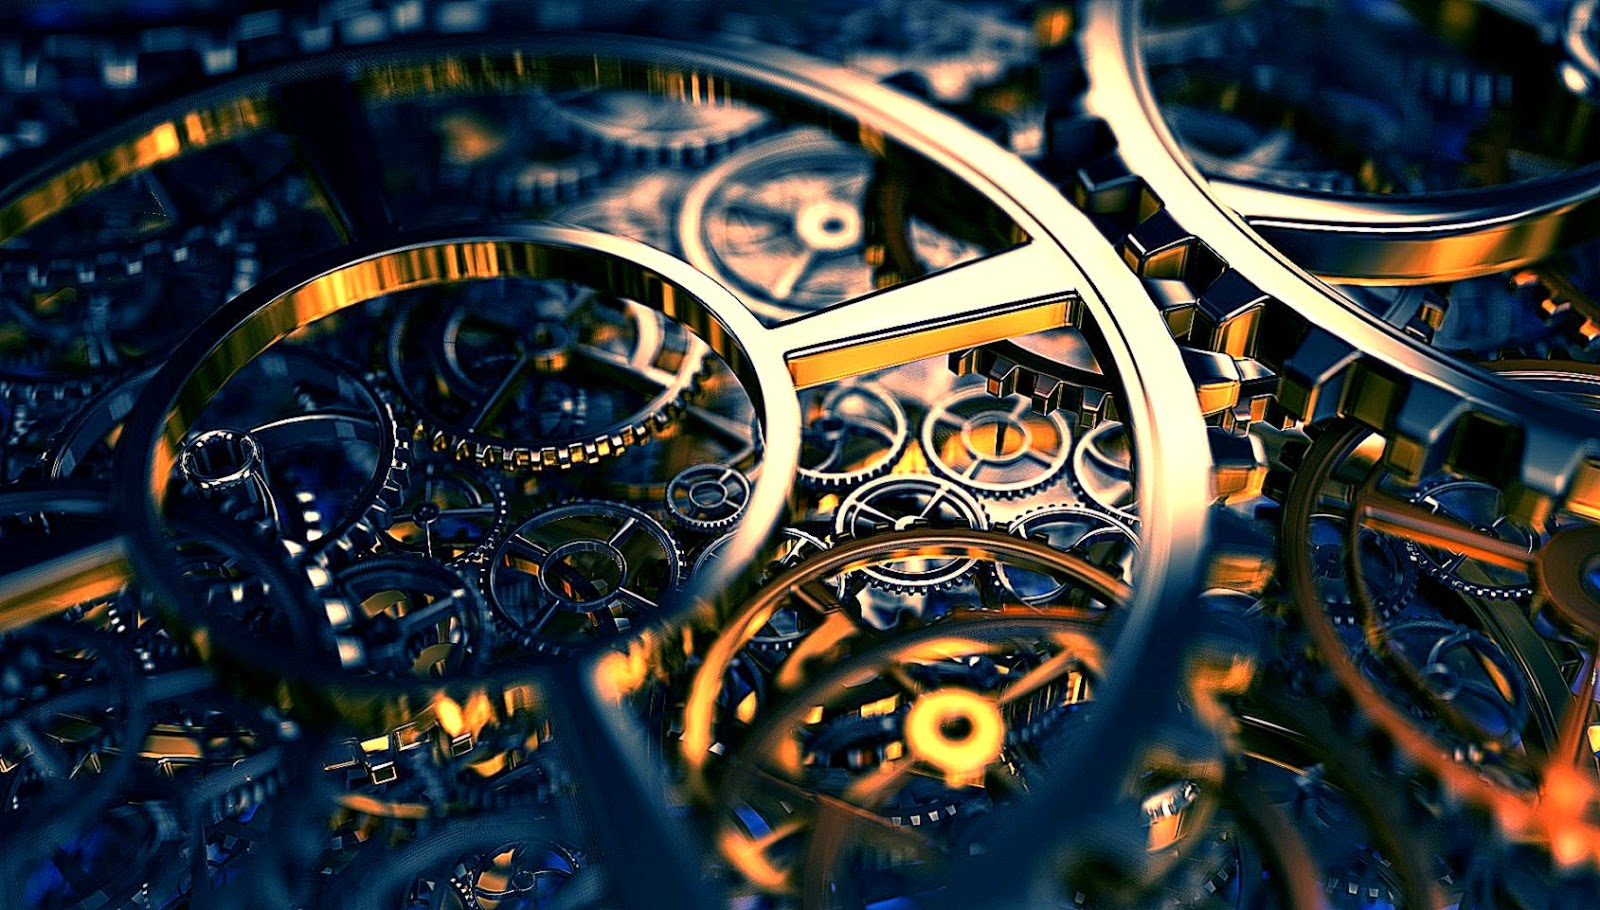 Steampunk Wallpaper Hd Cool HD Wallpapers 1600x910